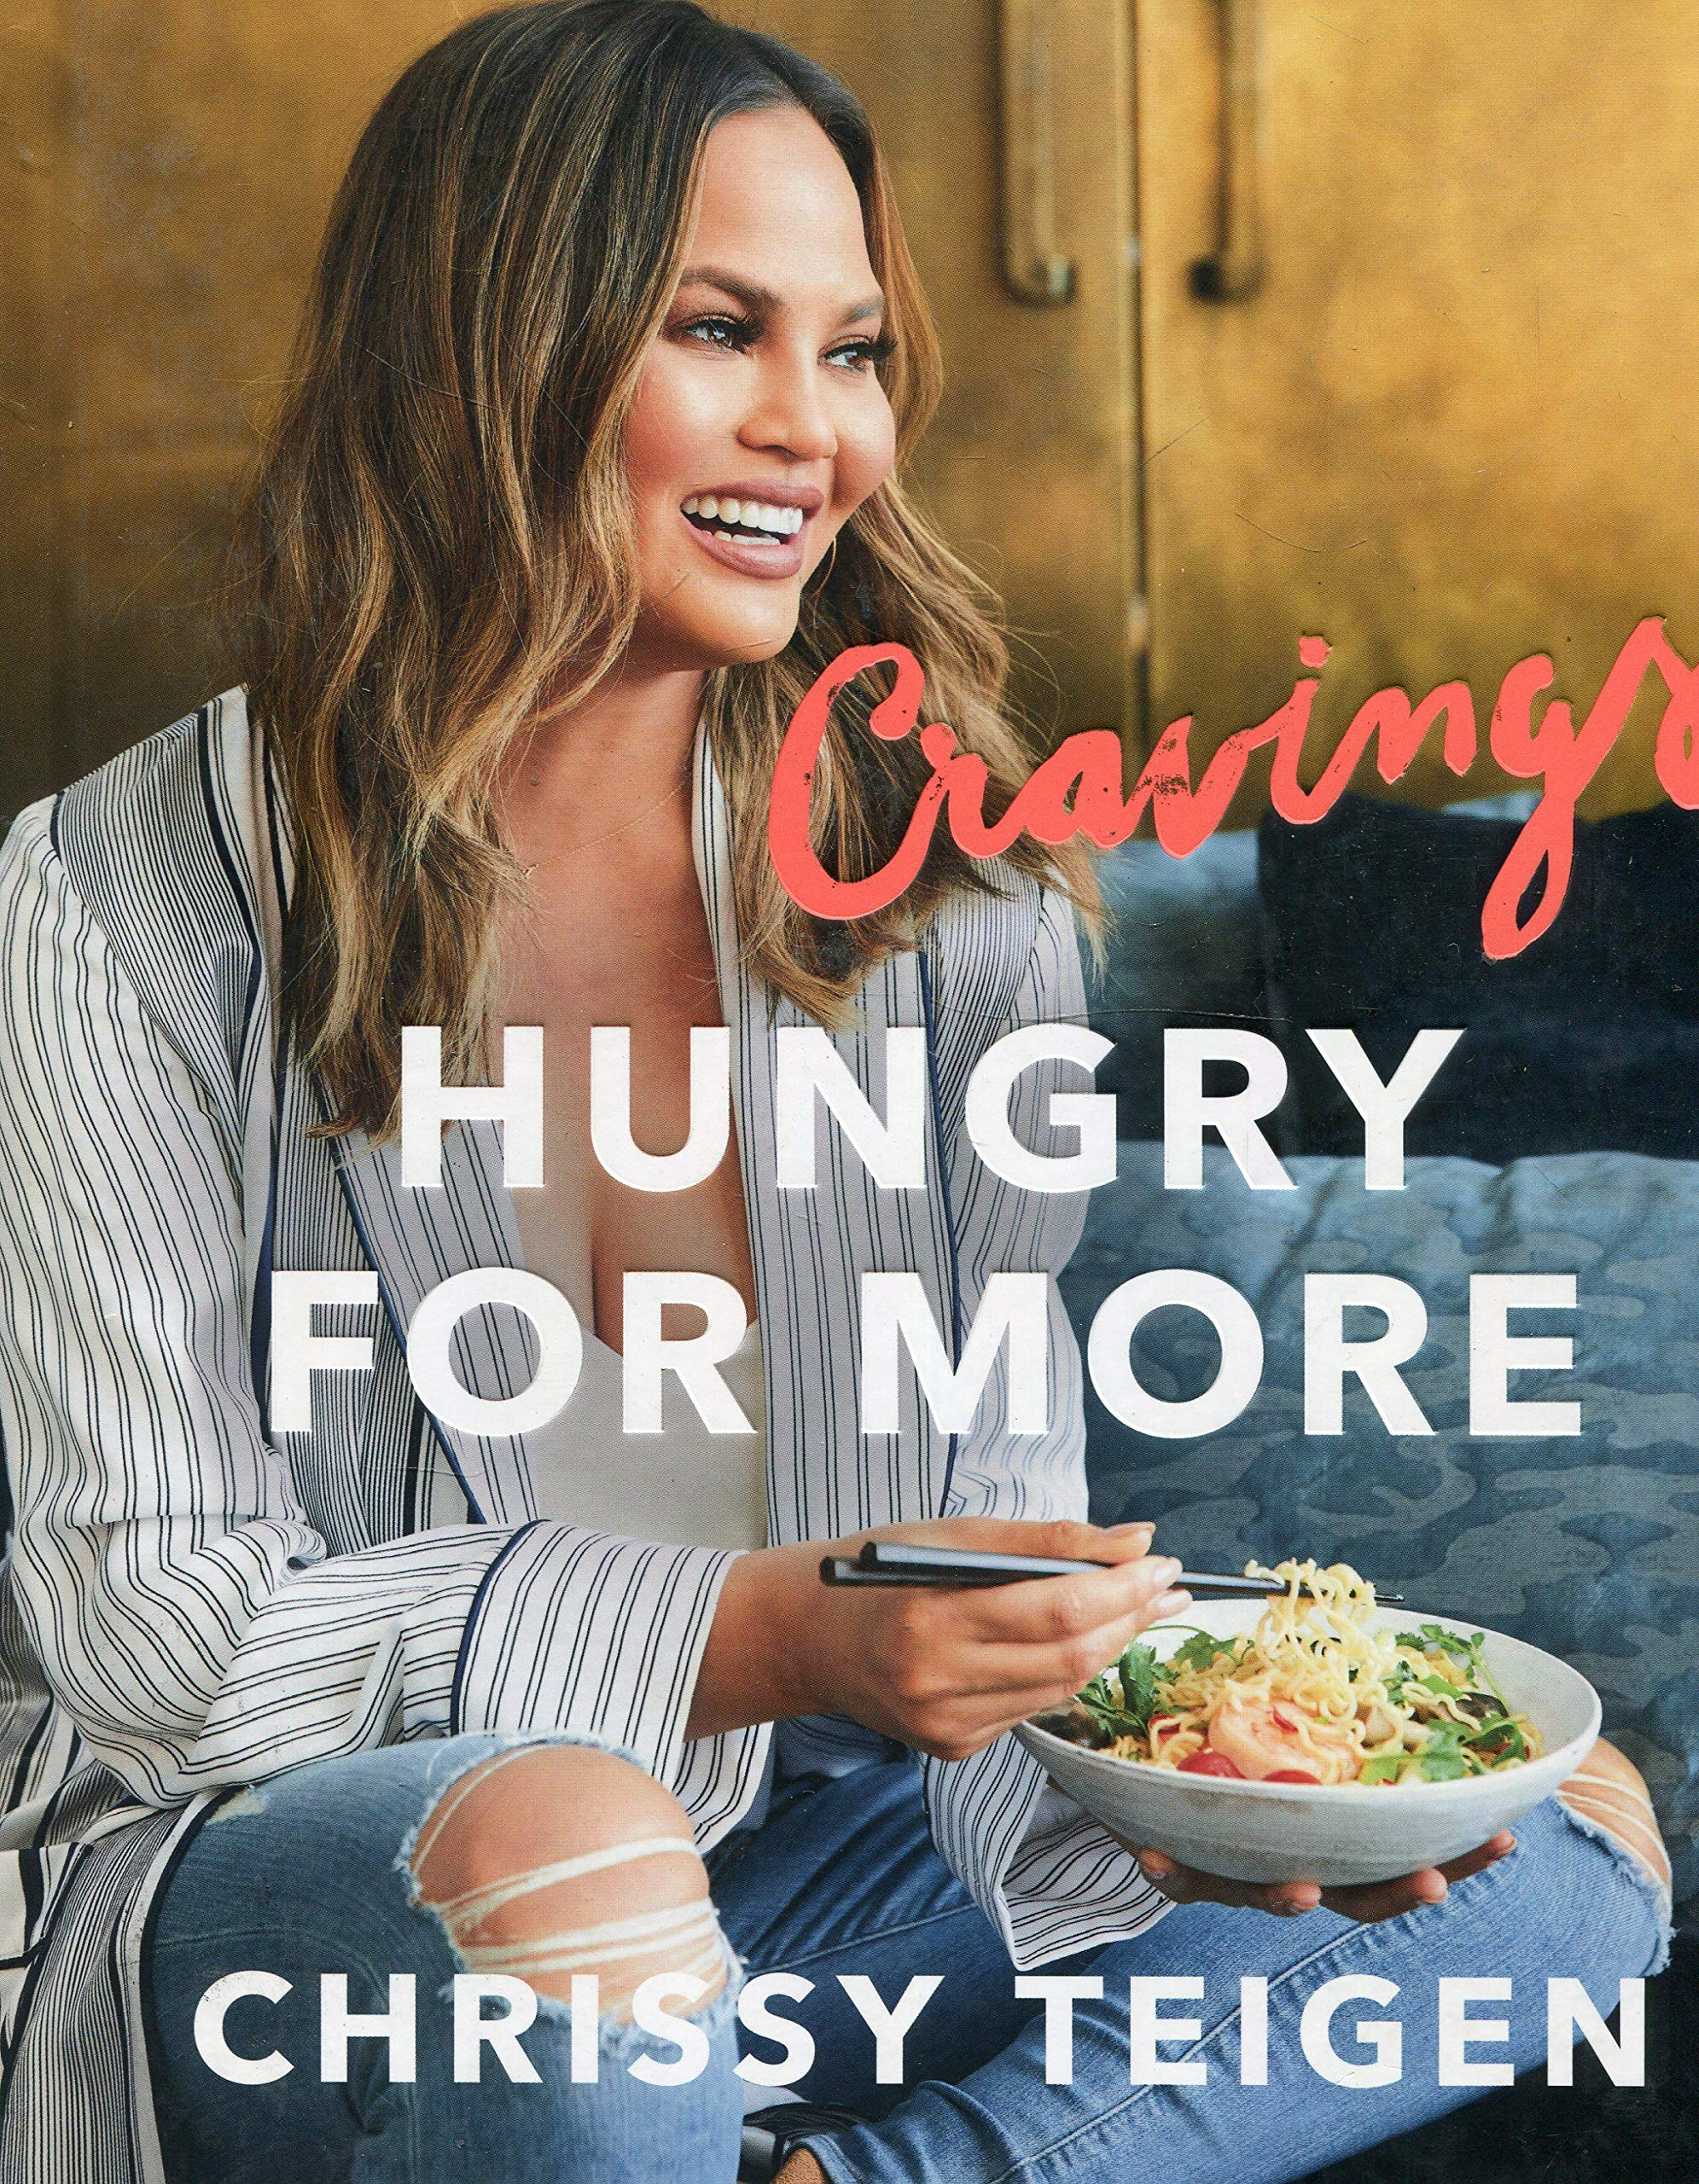 chrissy teigen cookbook - HOLIDAY GIFT GUIDE